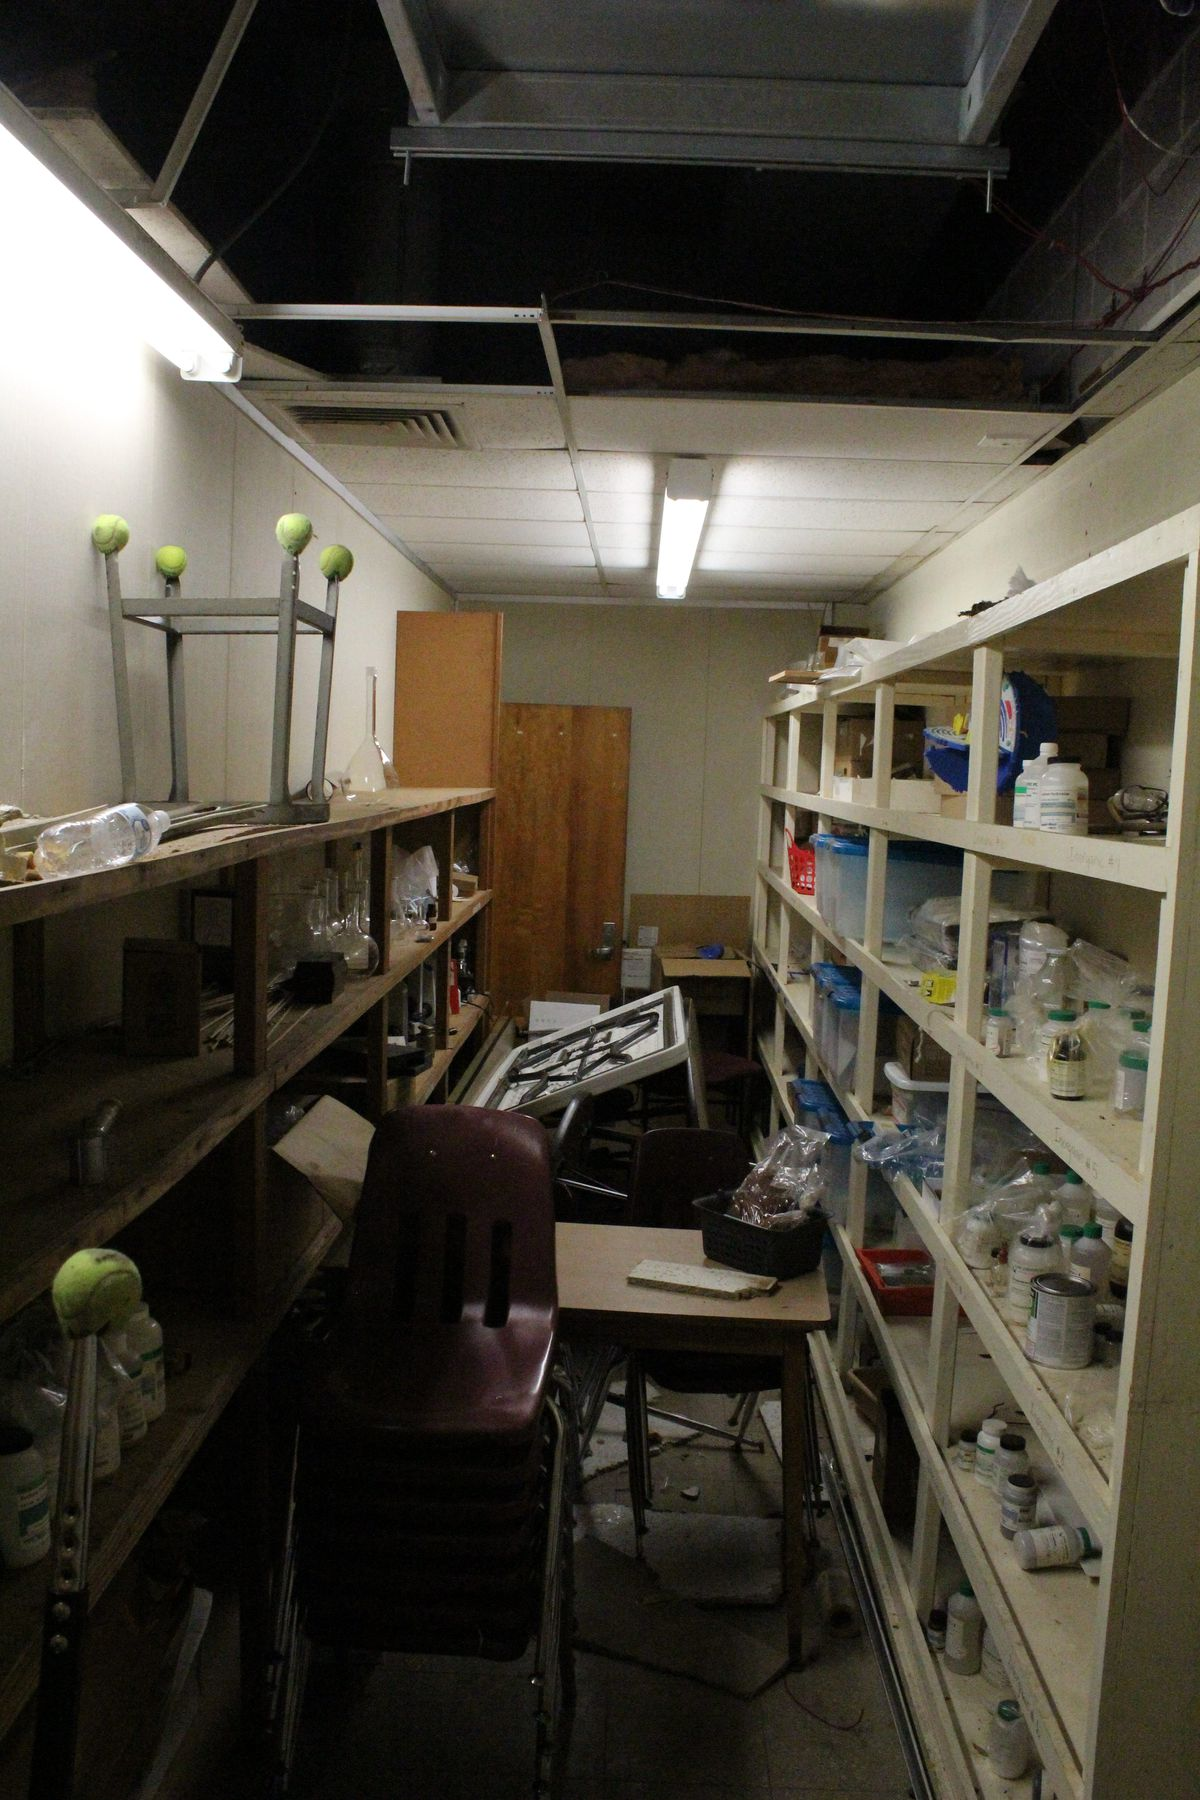 Most of the chemicals and supplies in Shivers' lab closet are outdated or unusable.